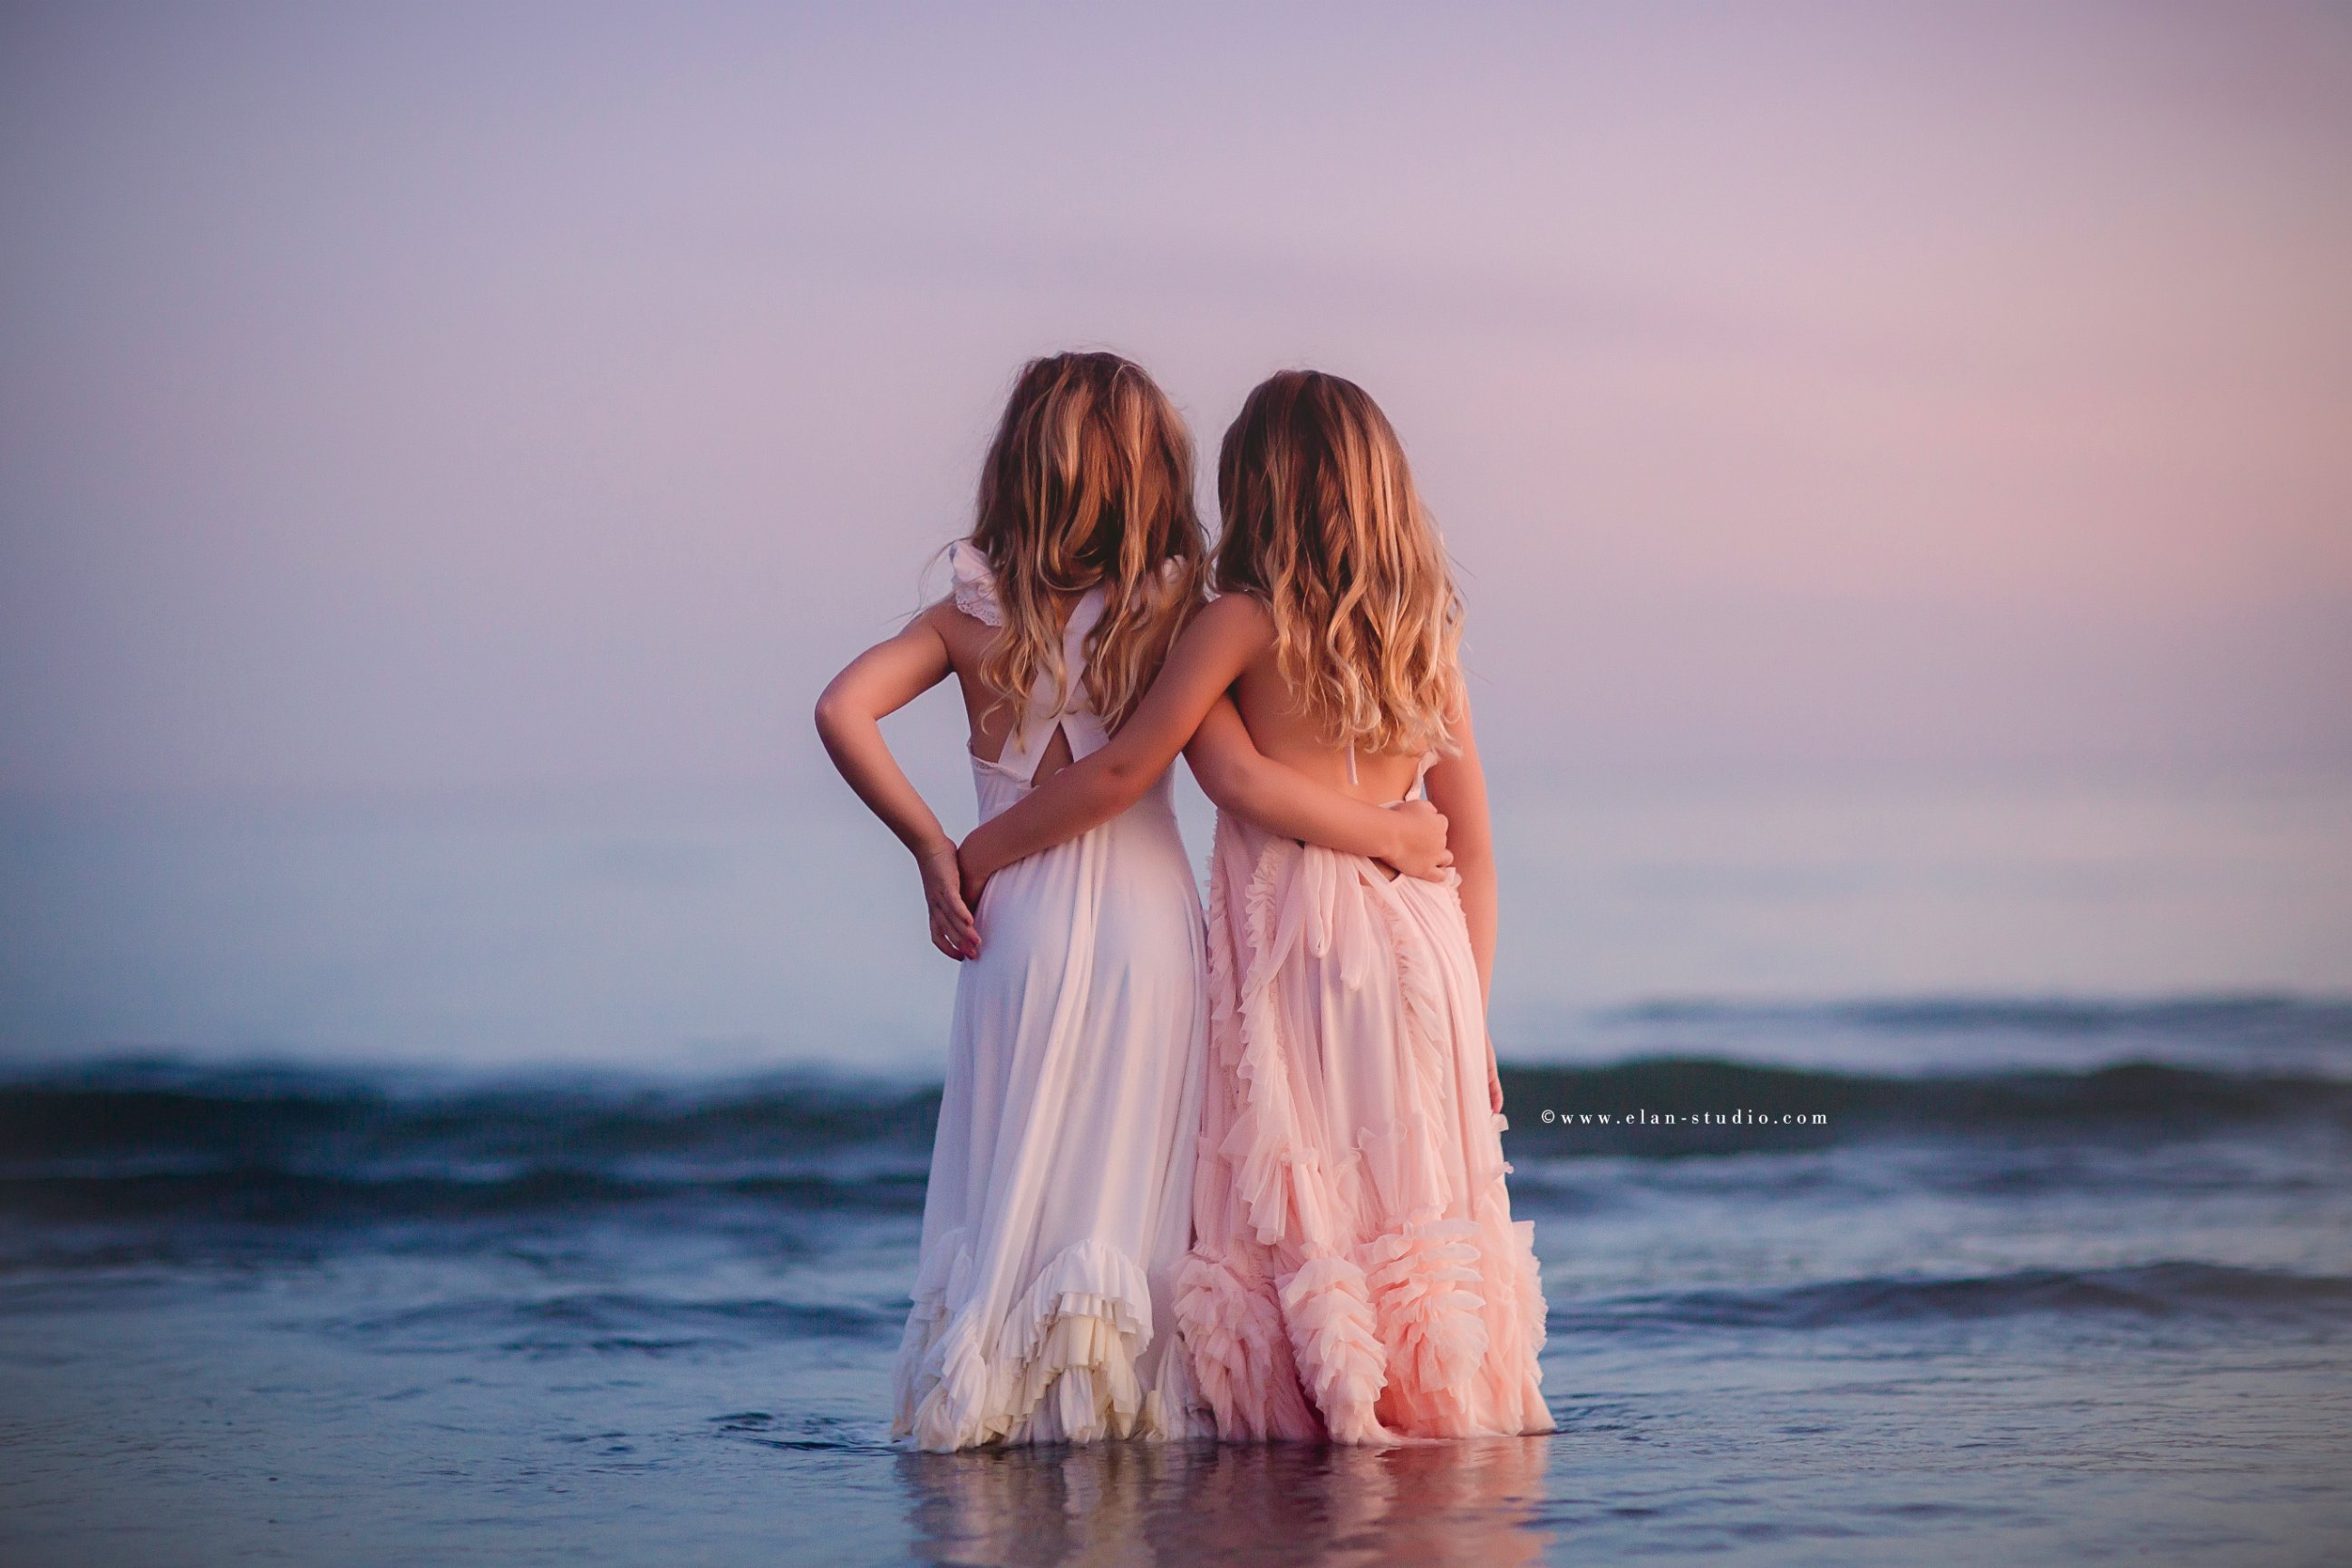 twin girls with arms around eachother, standing in ocean at sunset